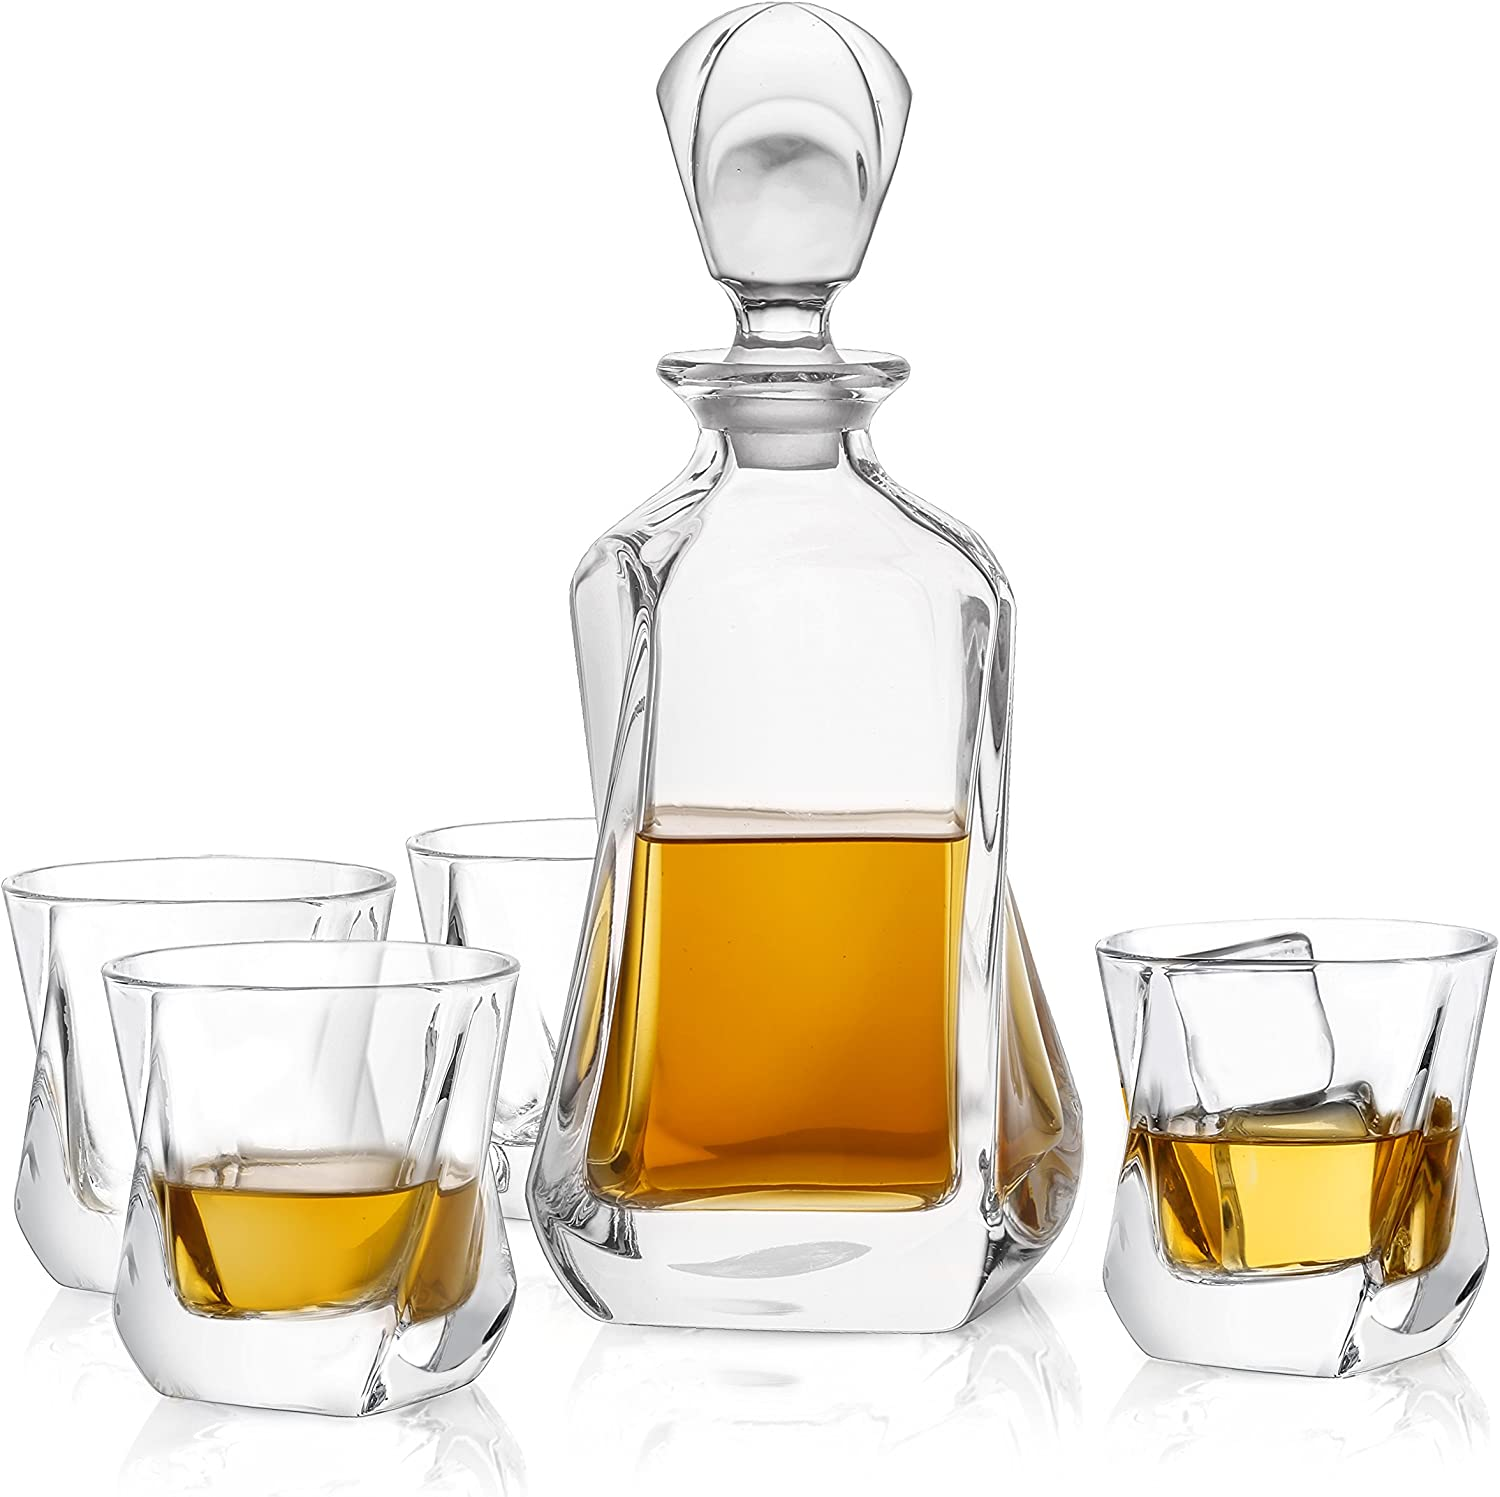 JoyJolt Aurora 5-Piece Crystal Whiskey Decanter Set,100% Crystal Bar Set, Crystal Decanter Set Comes With A Scotch Decanter-25.3 Ounces And A Set Of 4 Old Fashioned Whiskey Glasses-8.10oz